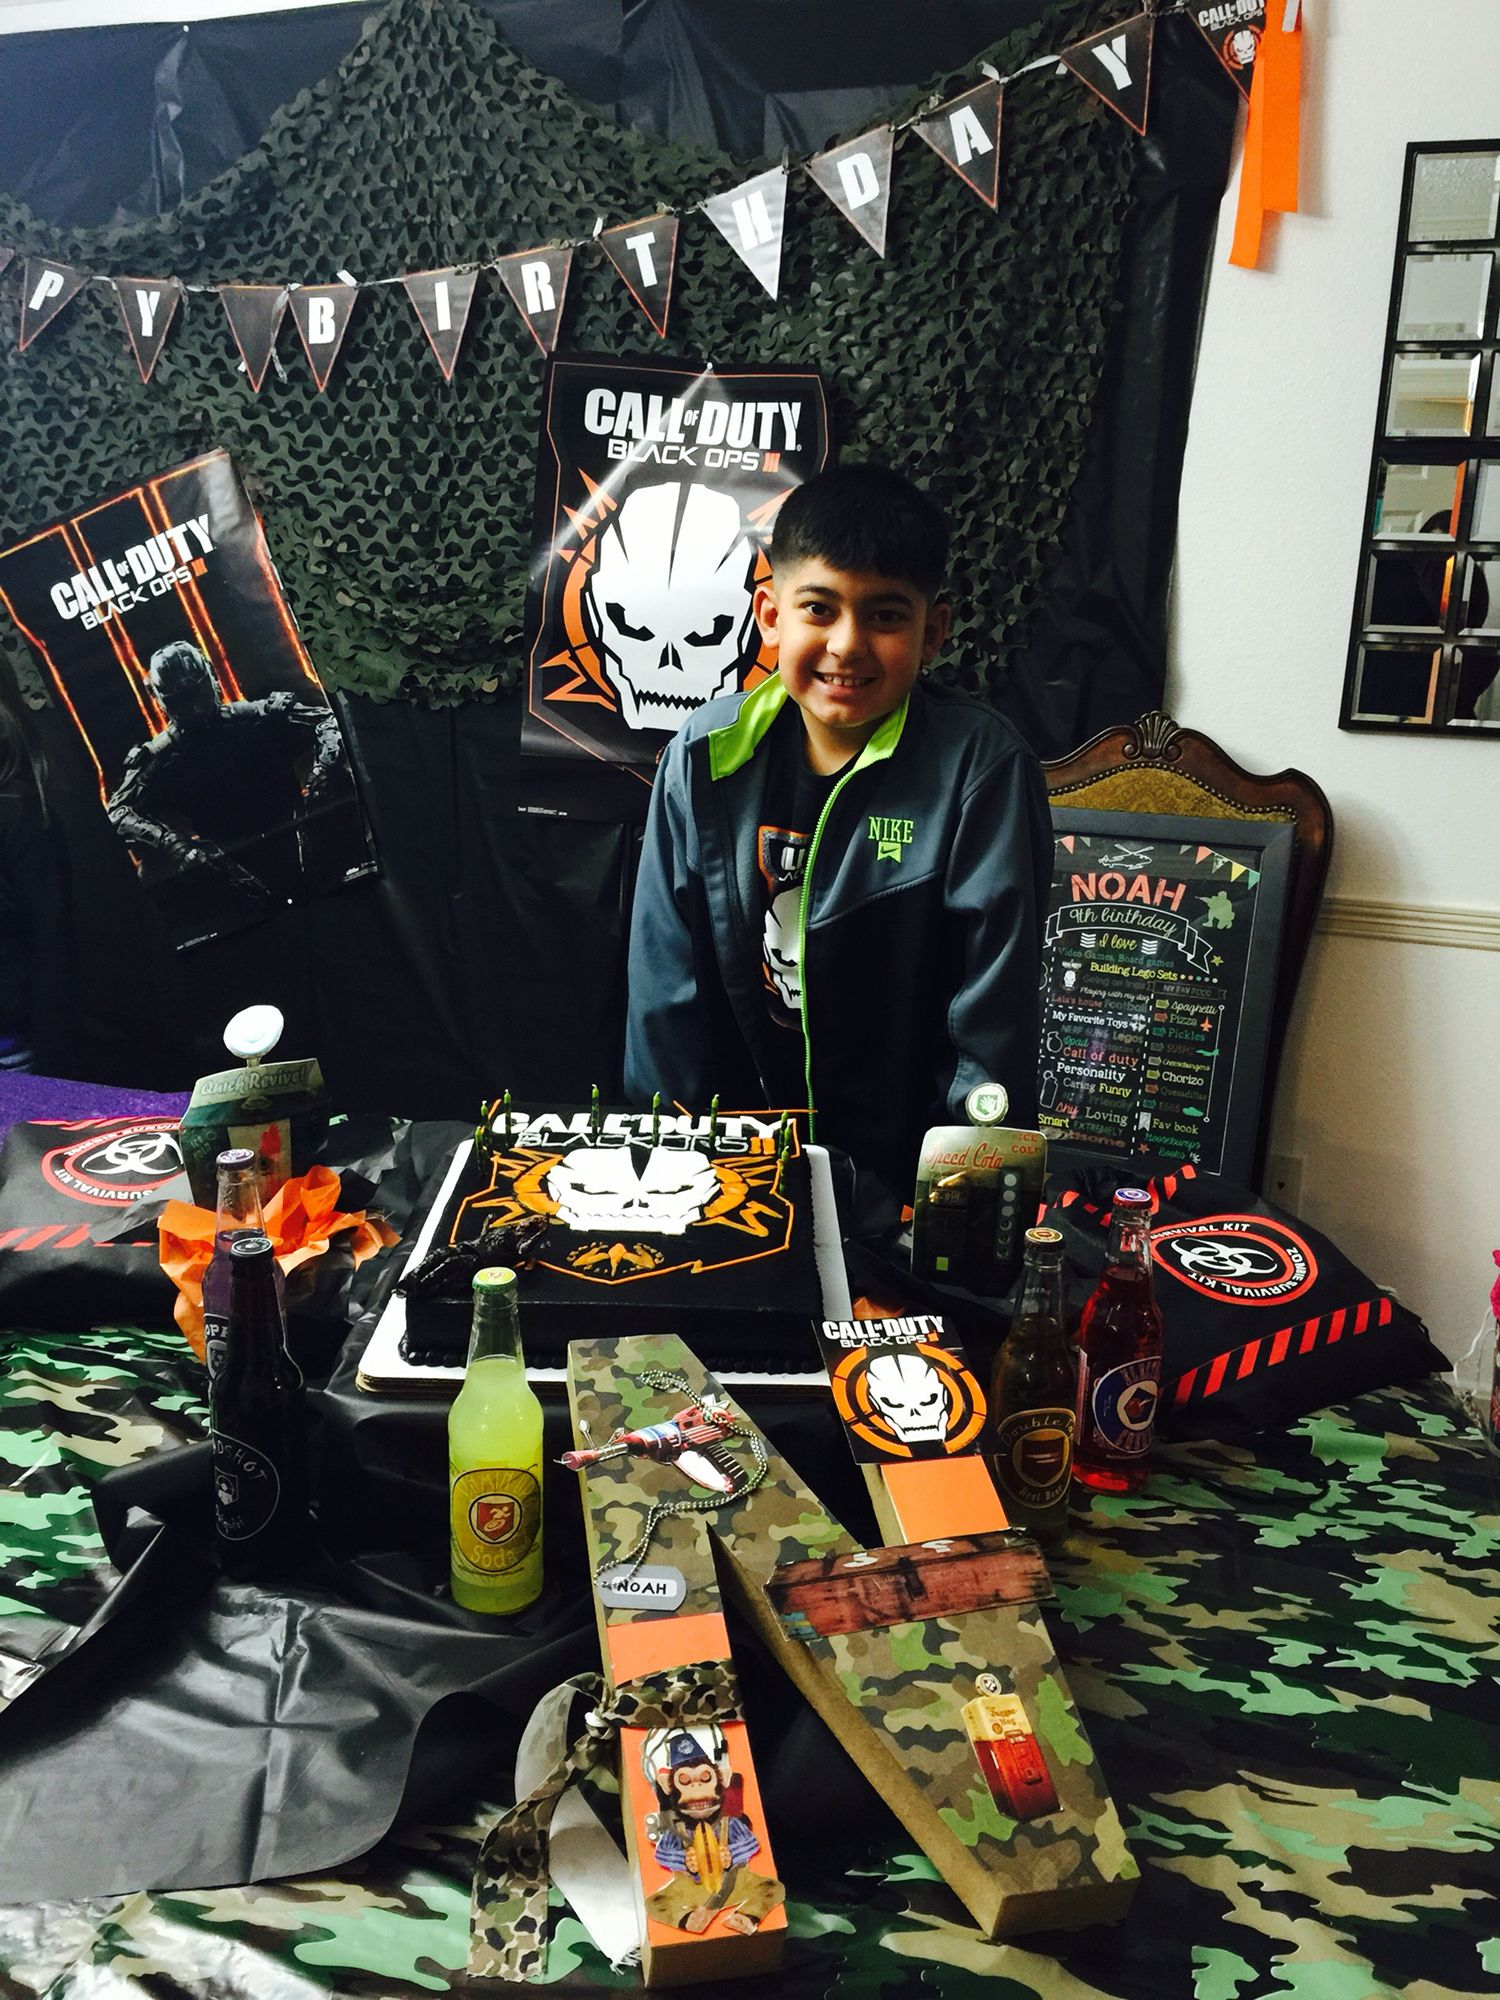 My noahs call of duty black ops 3 party decorcake twins birthday my noahs call of duty black ops 3 party decorcake filmwisefo Image collections